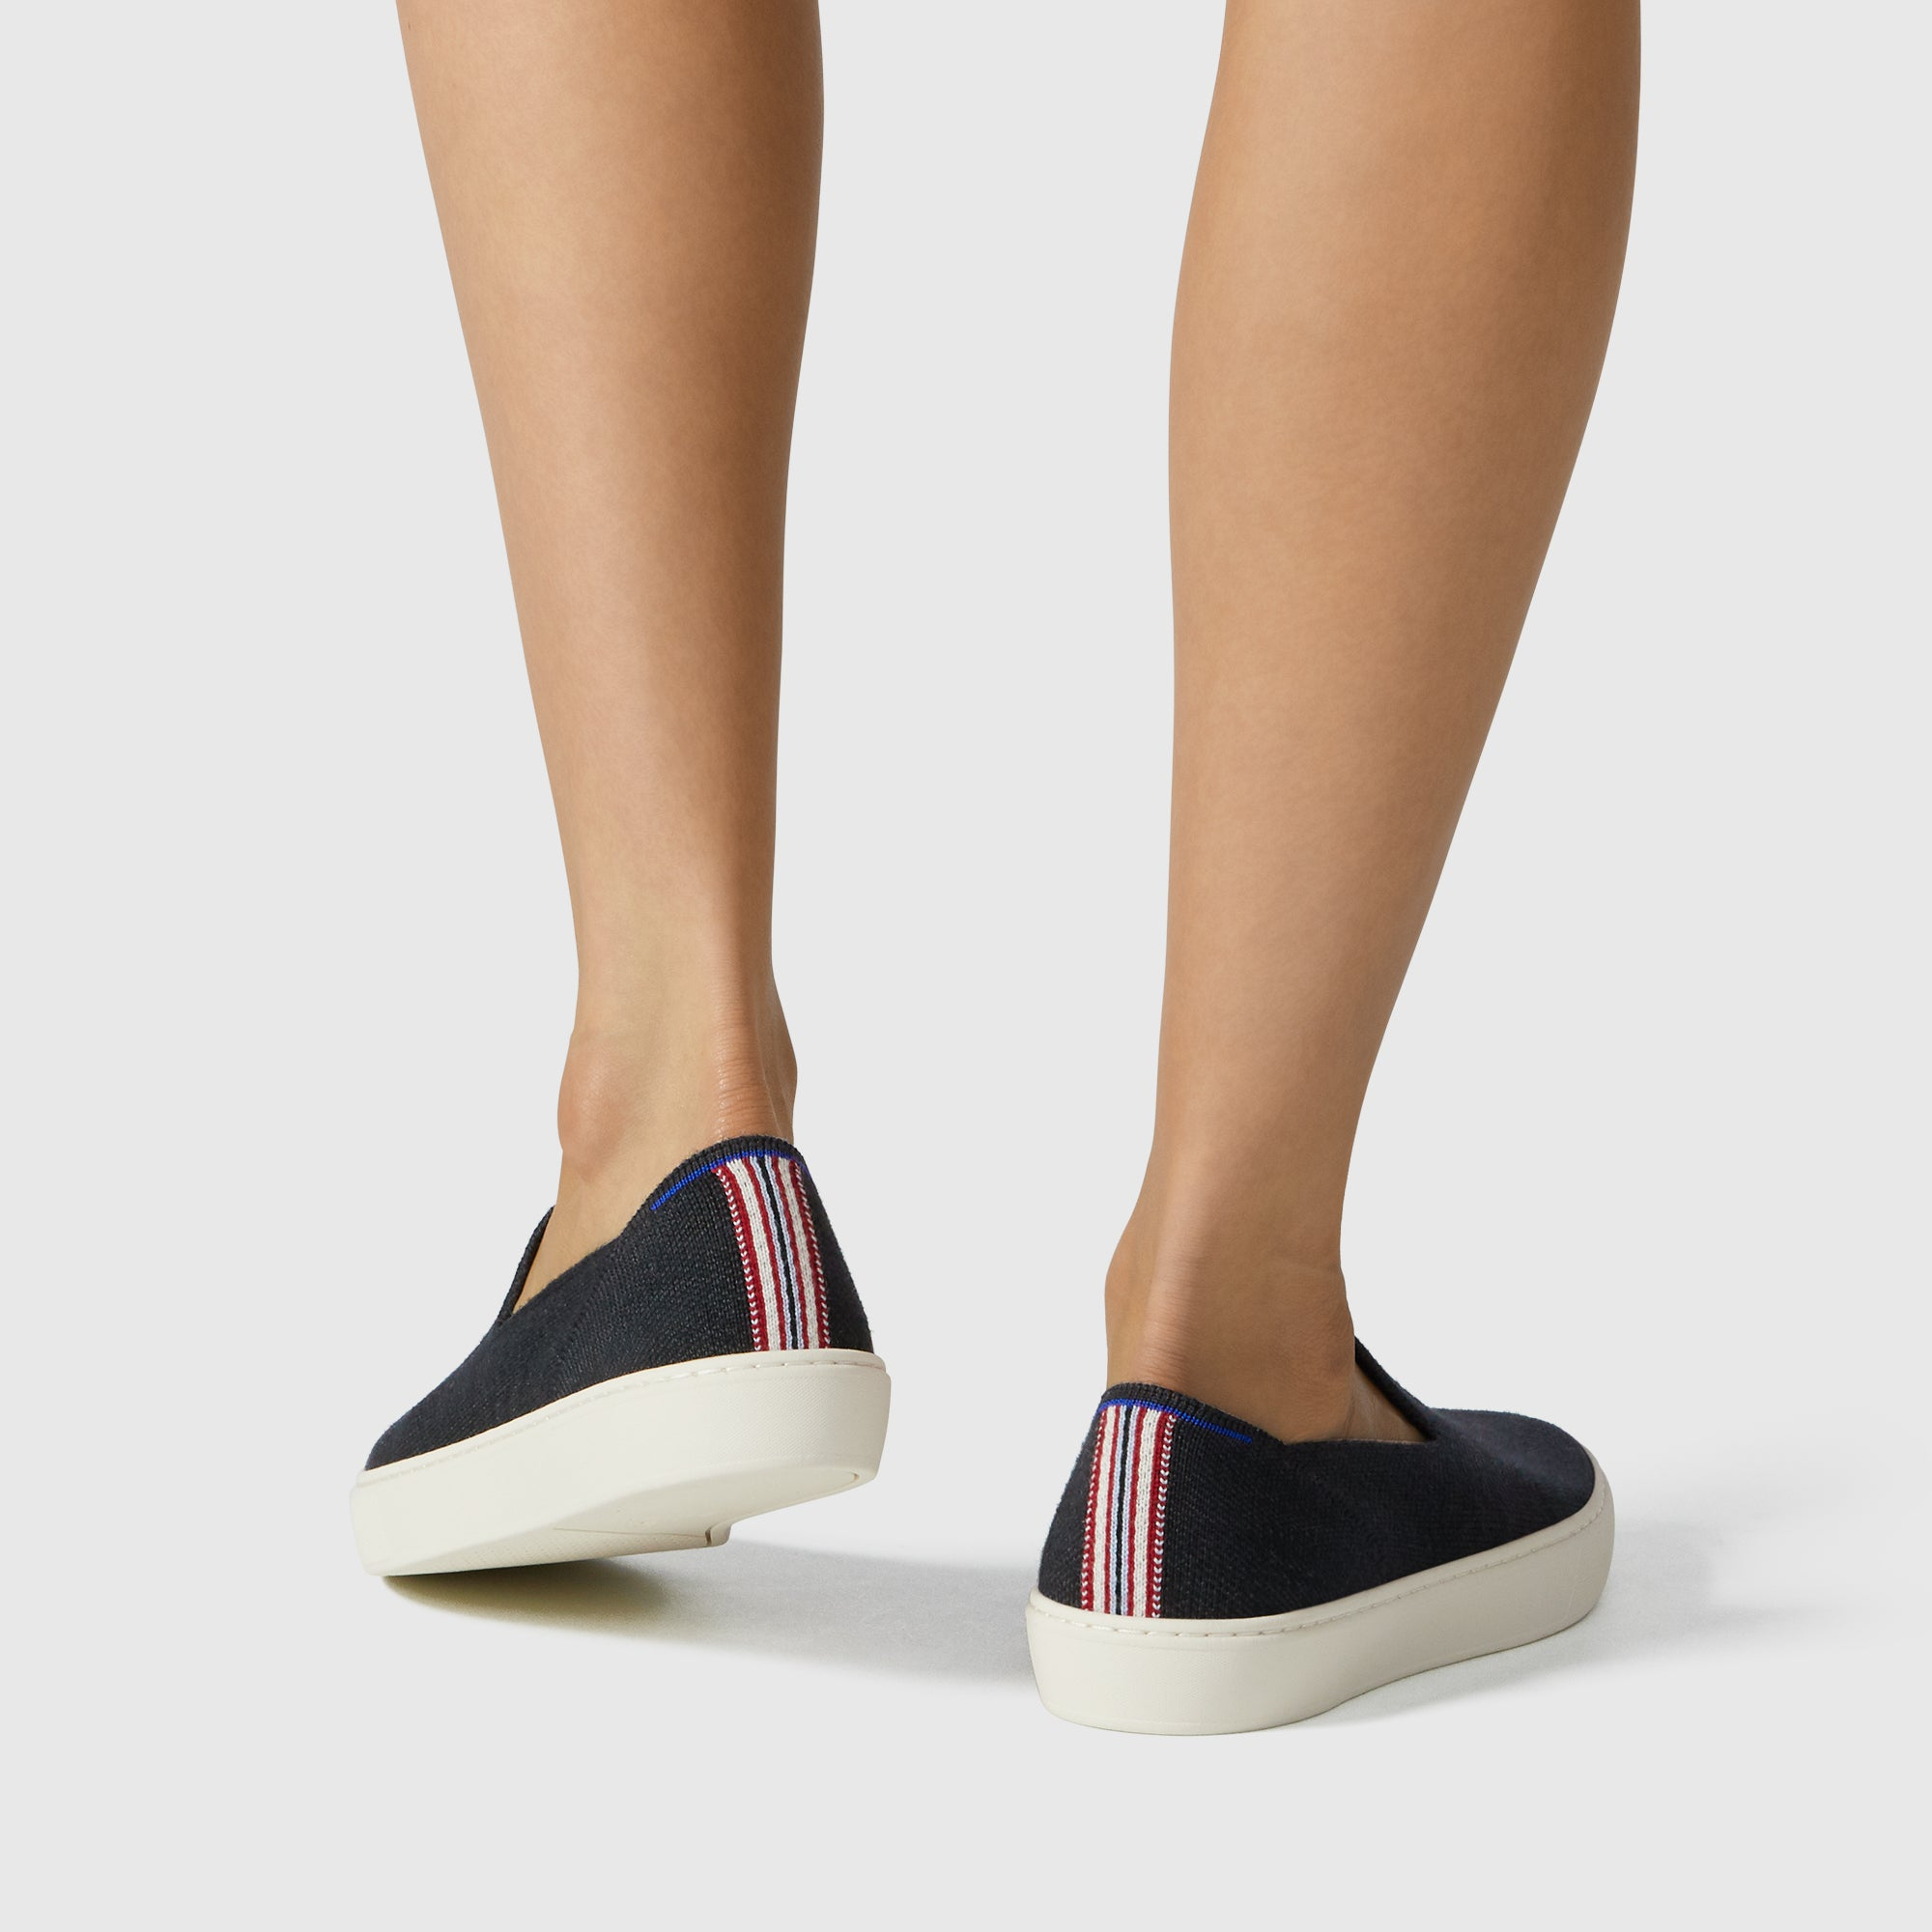 The Merino Sneaker in Soft Black shown on-model at an angle.